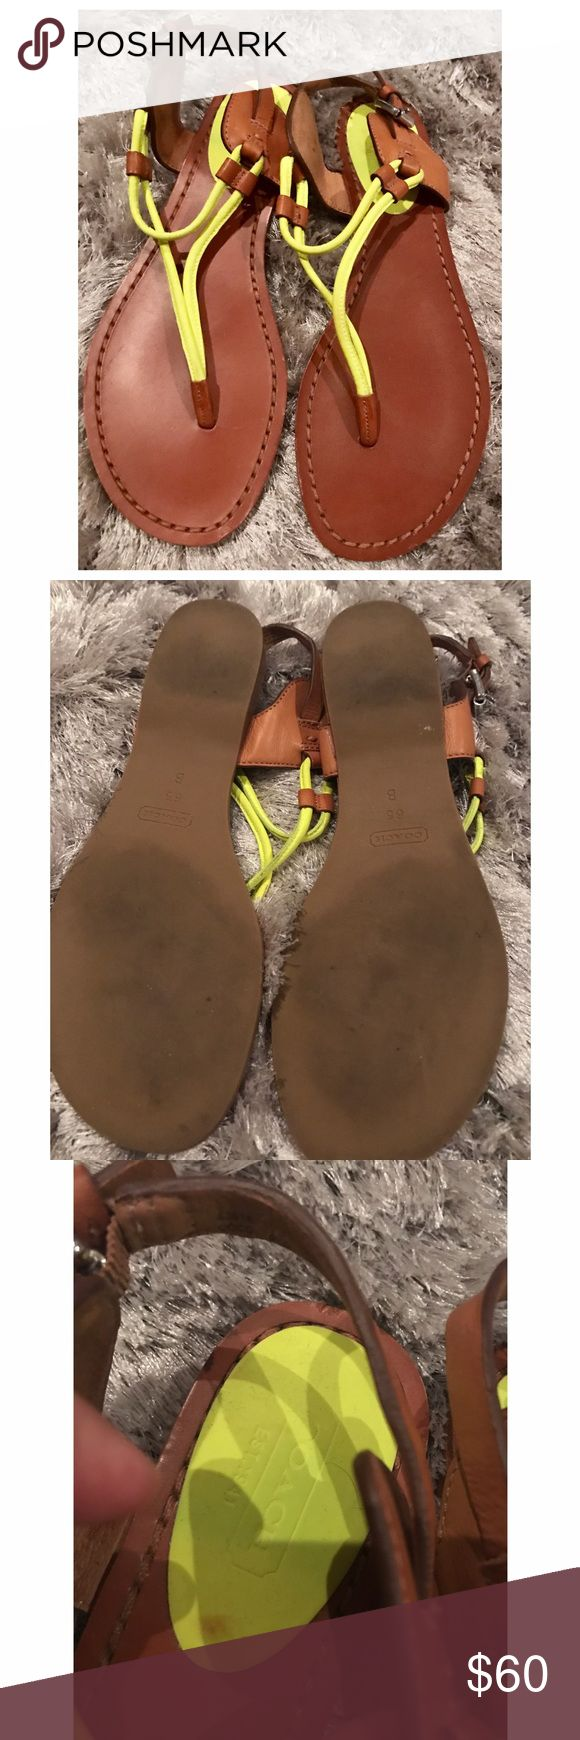 Coach neon sandals sz 6.5 Gorgeous pair of coach sandals in neon green and tan. These run slightly big. 100% authentic. They were used once. There are brown marks on the heel of the shoe however they aren't seen when wearing the shoe. ❤offers welcome! Coach Shoes Sandals